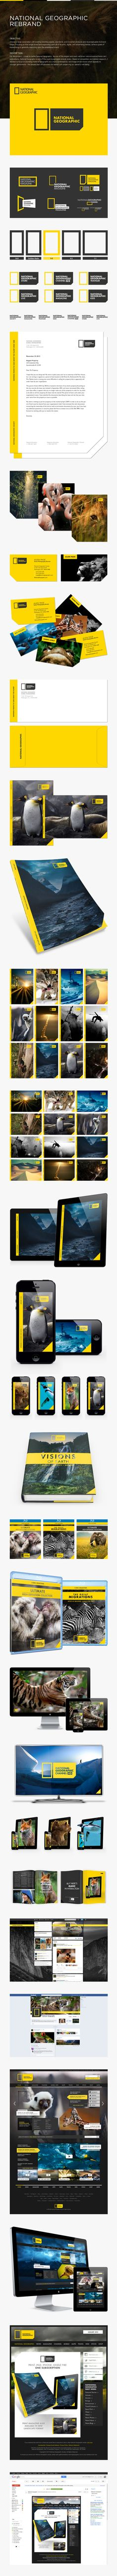 National Geographic Rebrand / Justin Marimon *** A complete rebranding of one of the leading nature, art, science, and history publishing companies, National Geographic